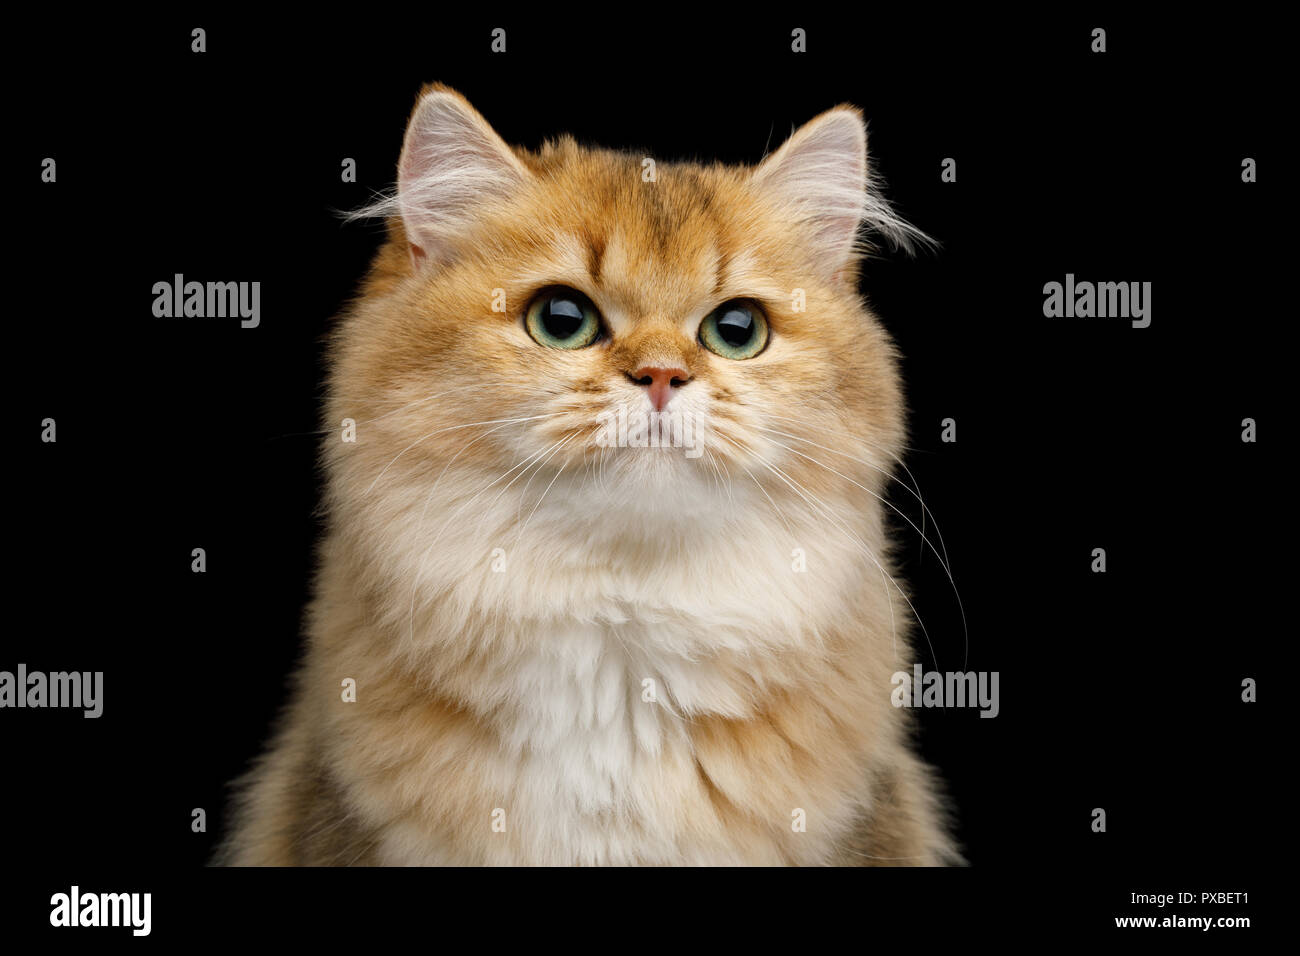 Portrait of British Cat Red color with Green eyes dreamily looks up on Isolated Black Background - Stock Image